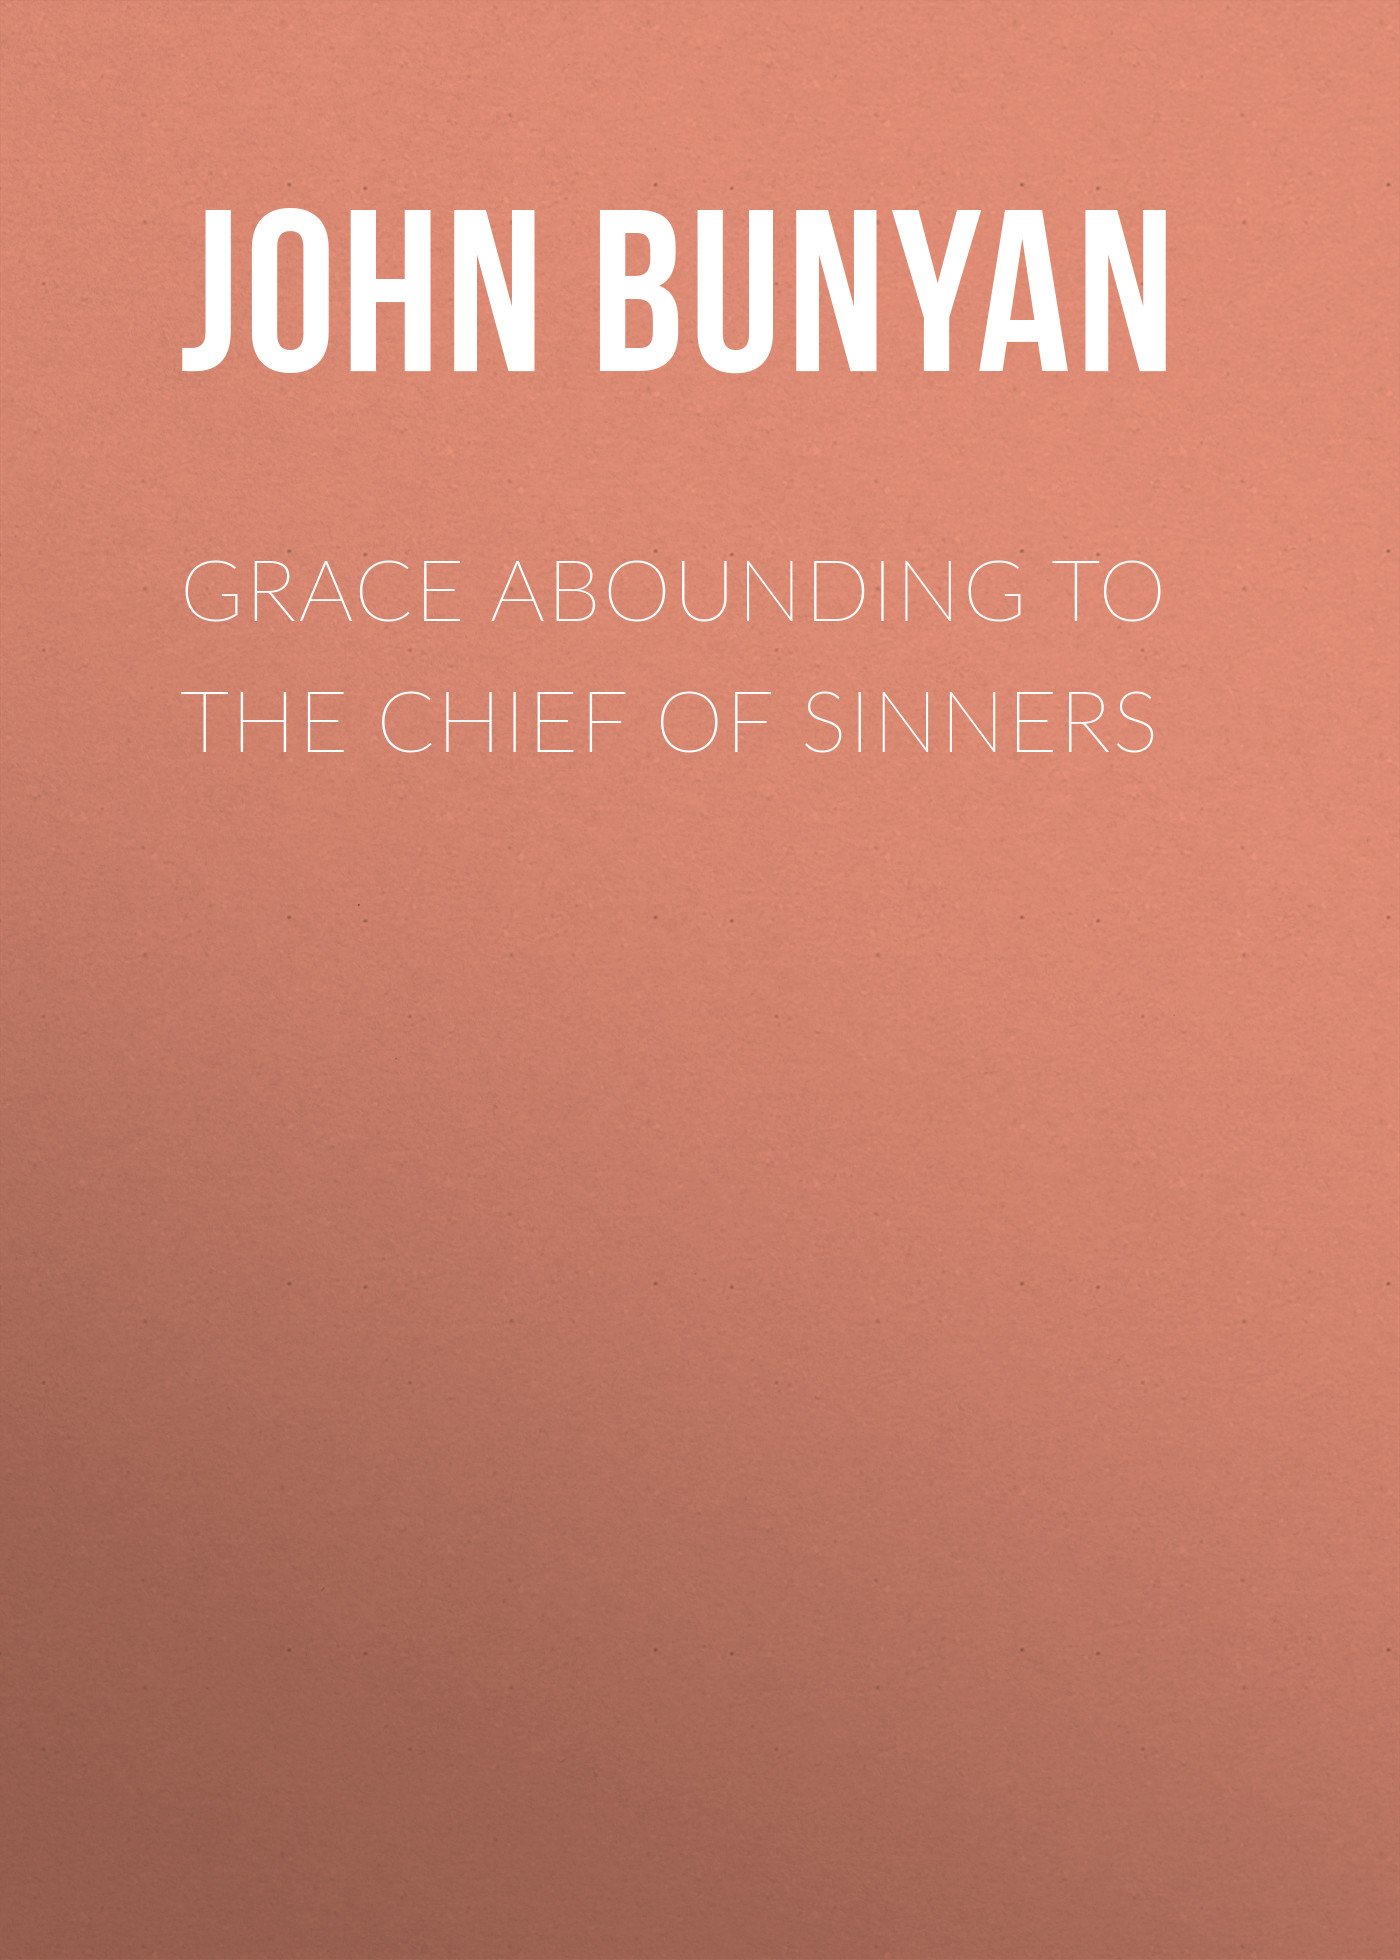 Фото - John Bunyan Grace Abounding to the Chief of Sinners st john of the cross ascent of mount carmel